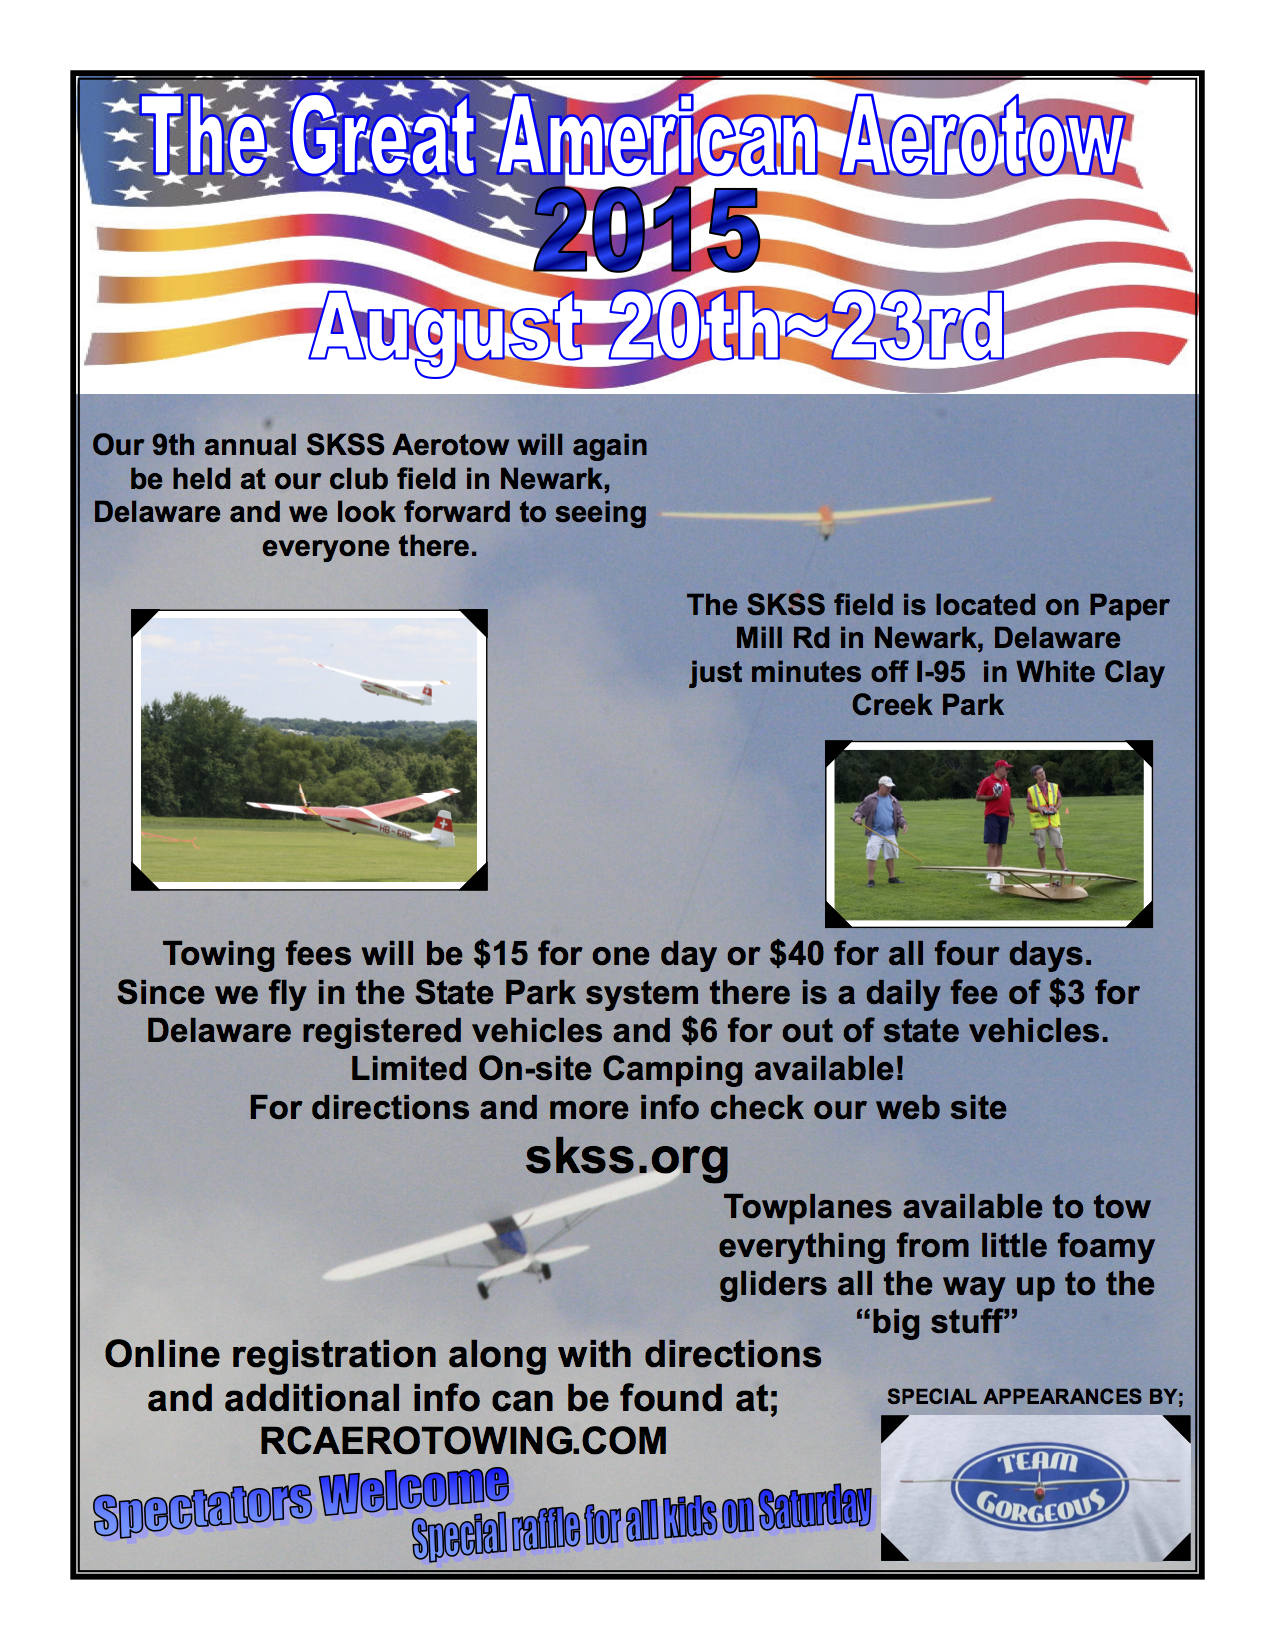 Great American Aerotow August 20-23, 2015